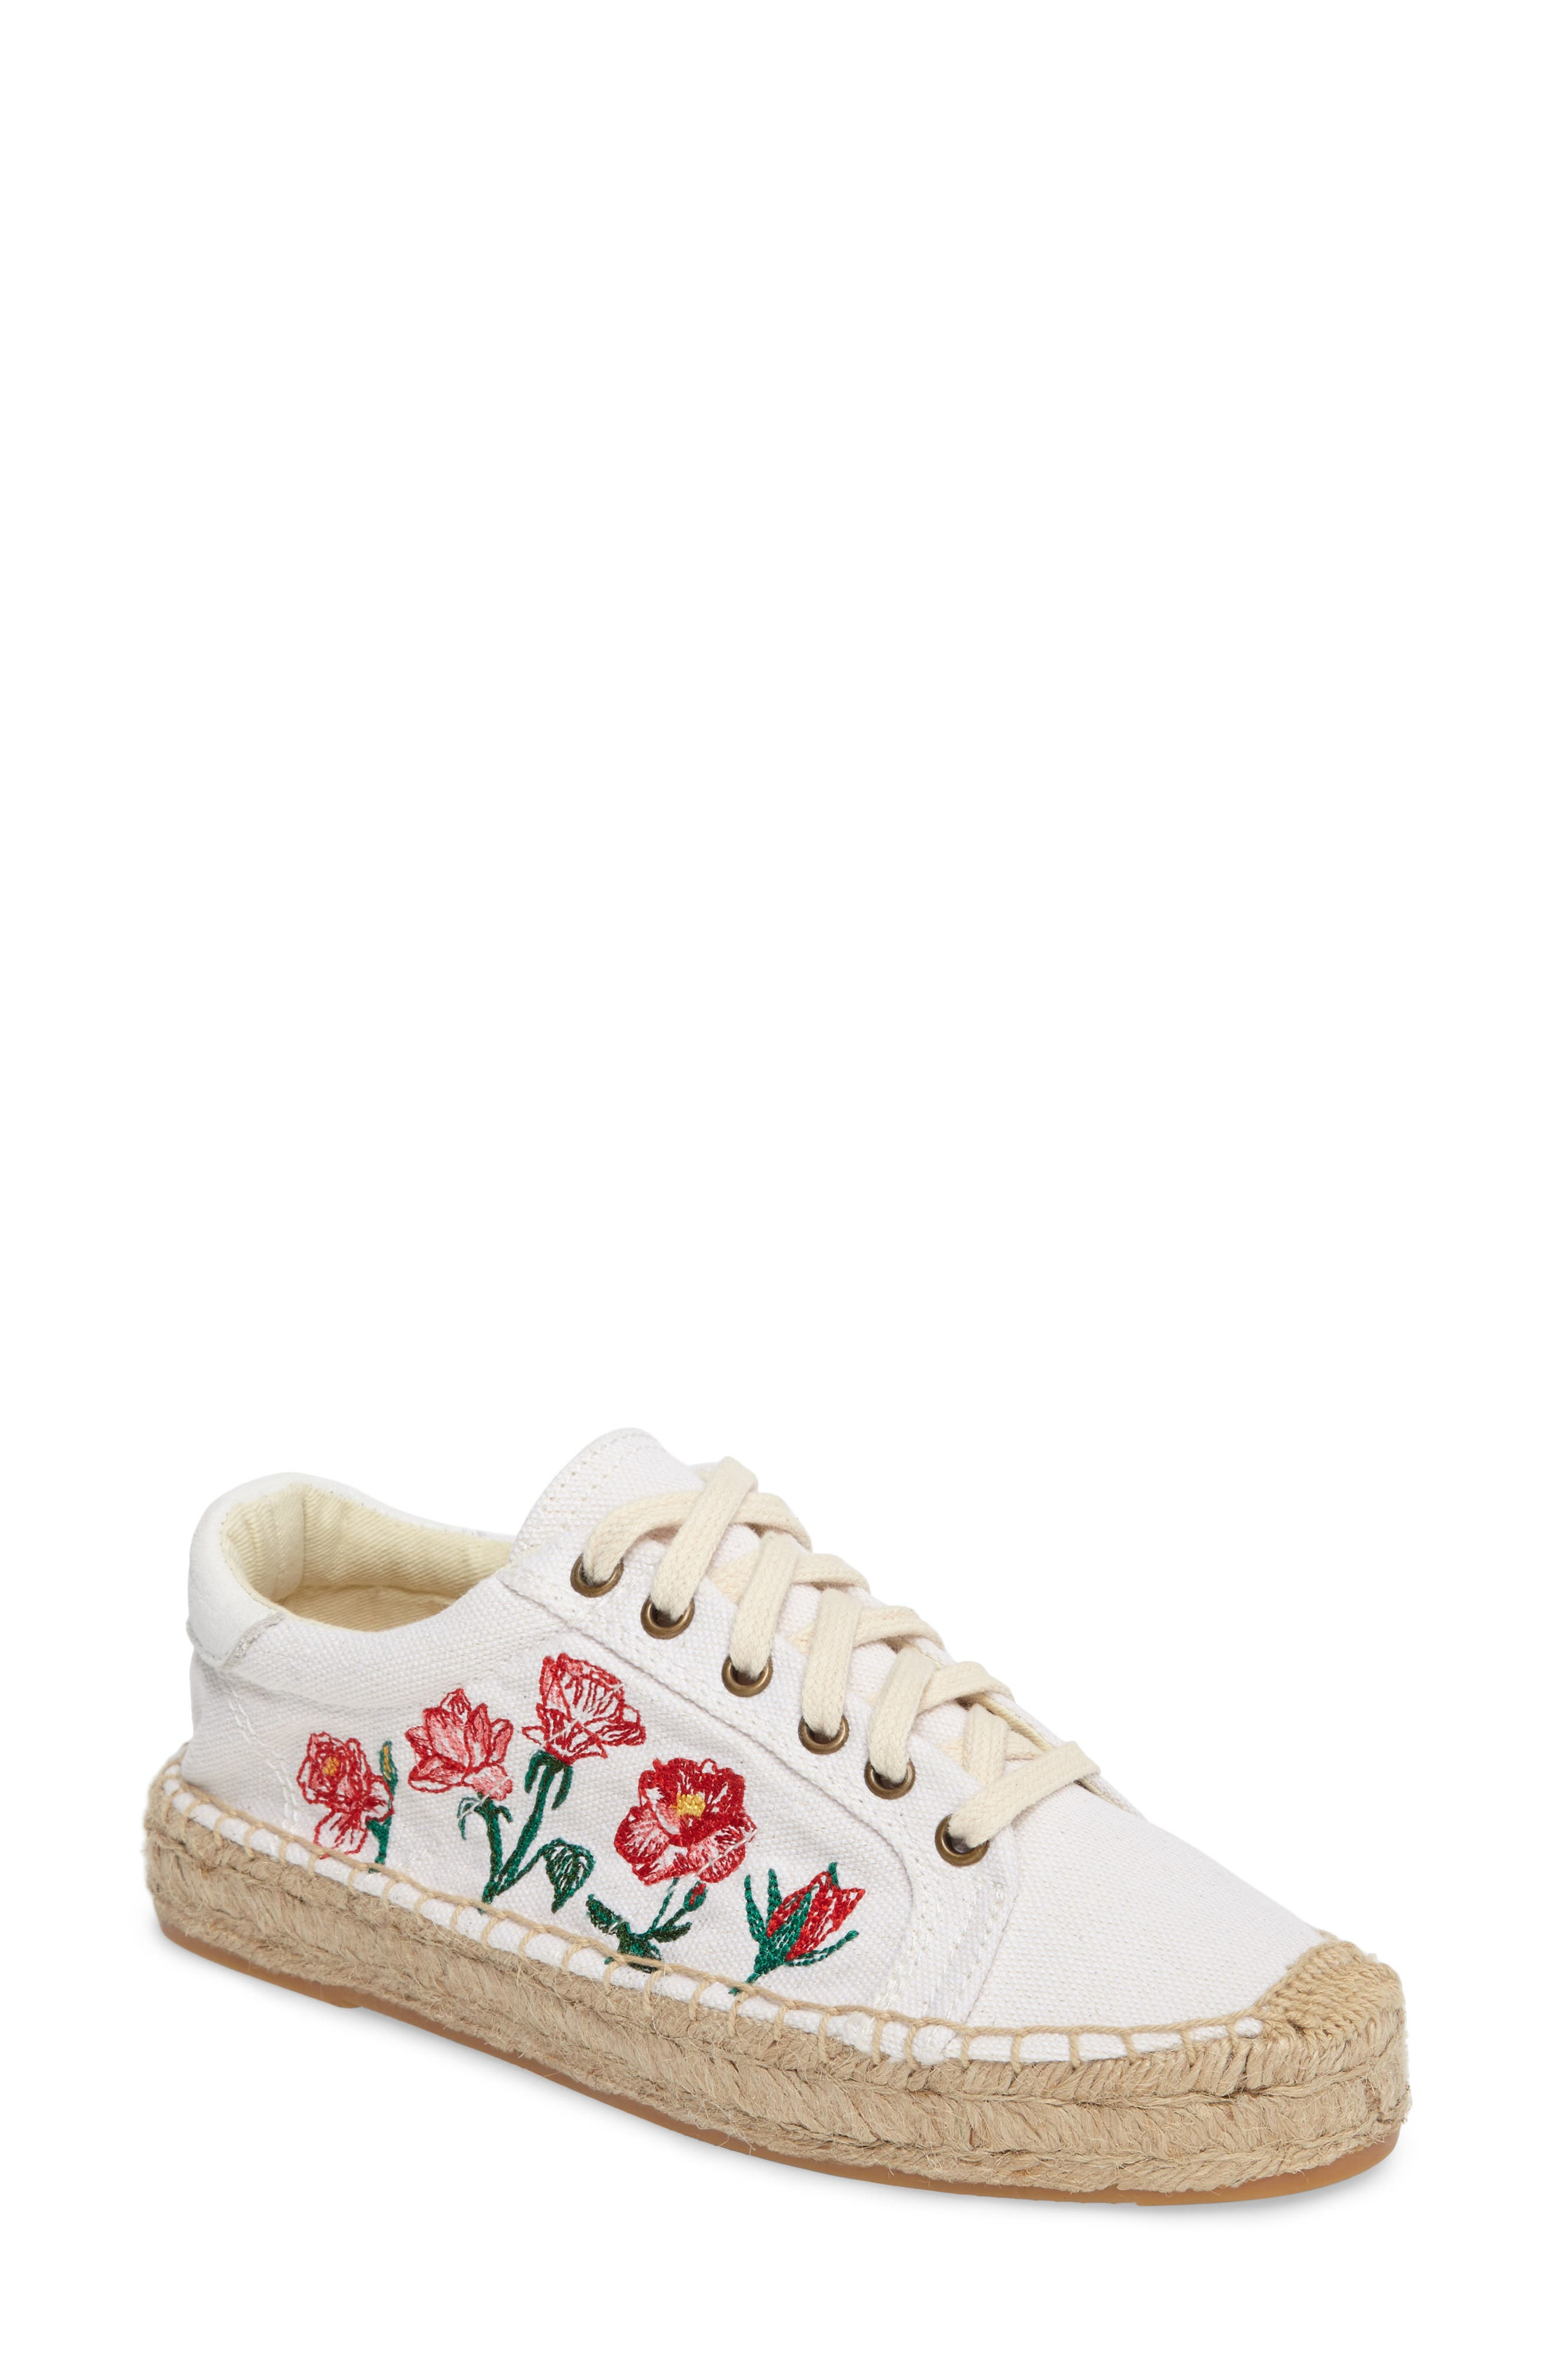 Floral Embroidered Espadrille Sneaker,                         Main,                         color, 100